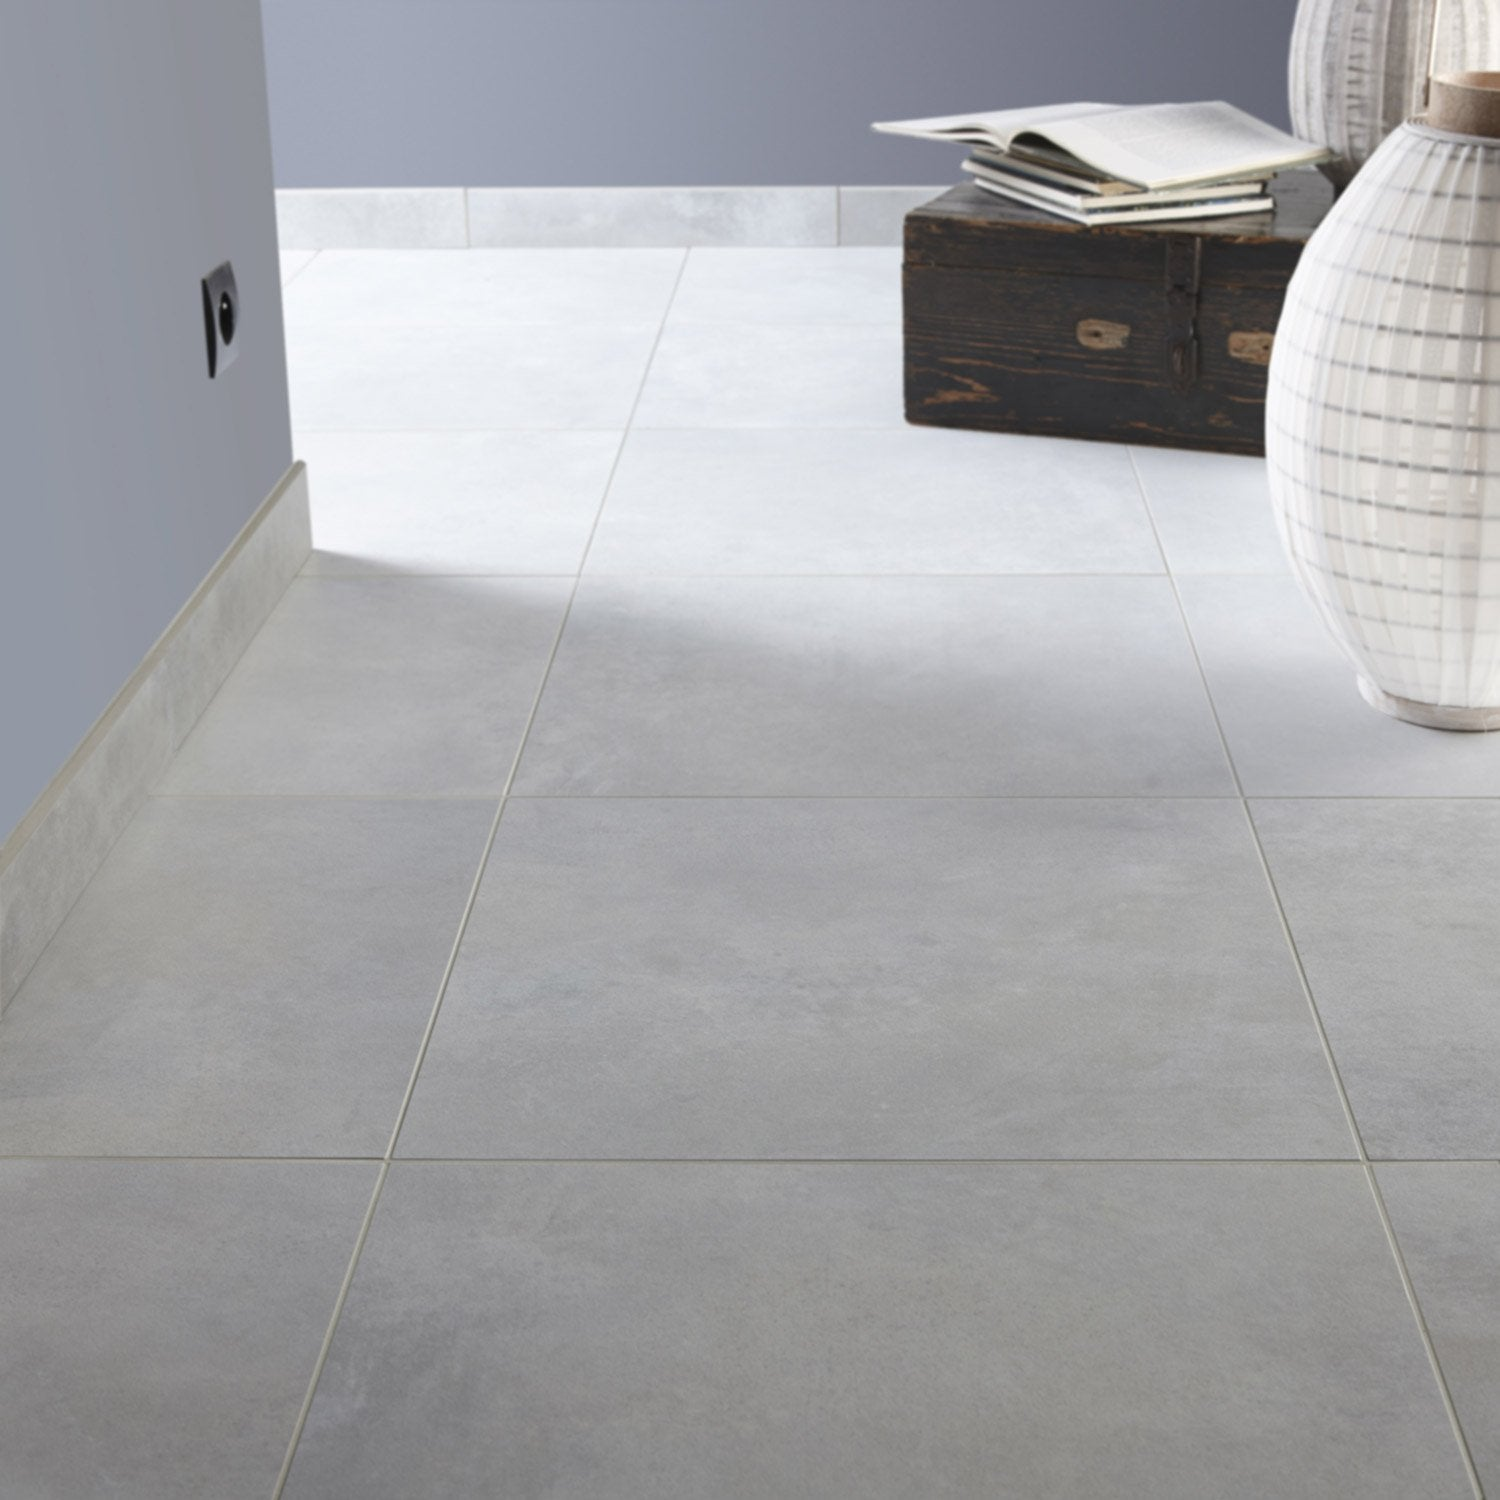 Carrelage 50x50 gris clair for Carrelage sol gris